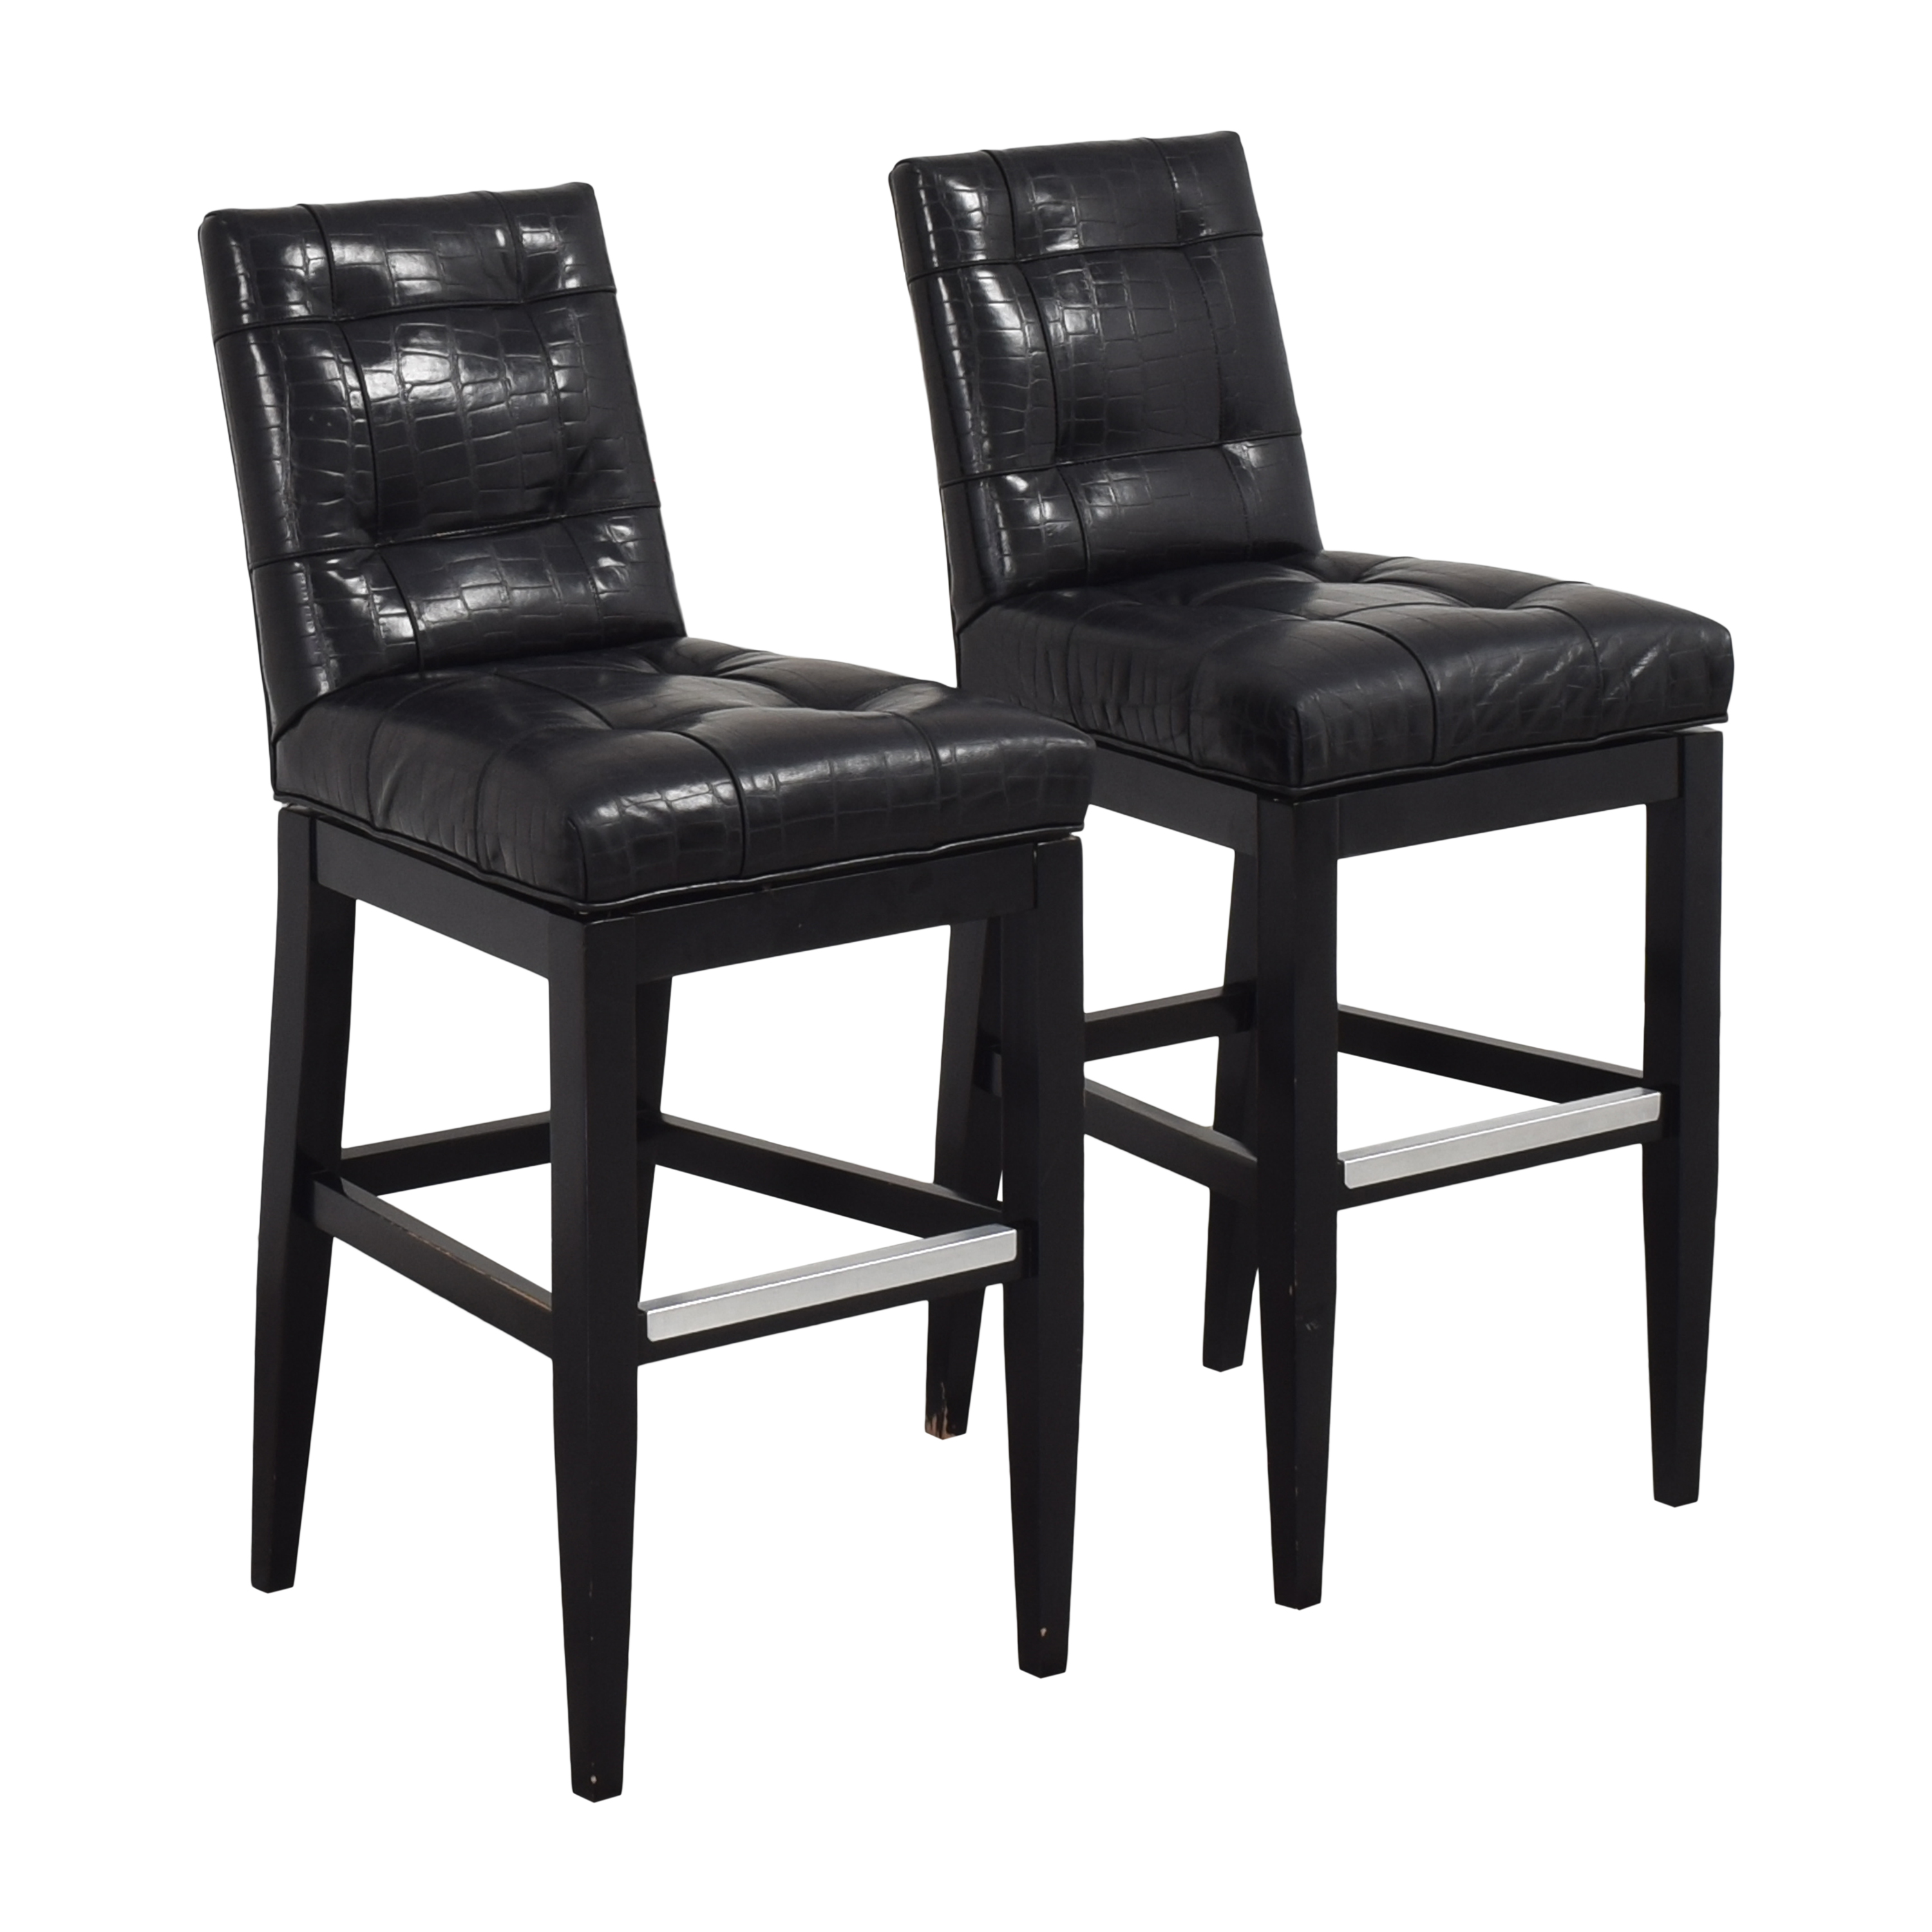 Jessica Charles Jessica Charles Tufted Bar Stools discount